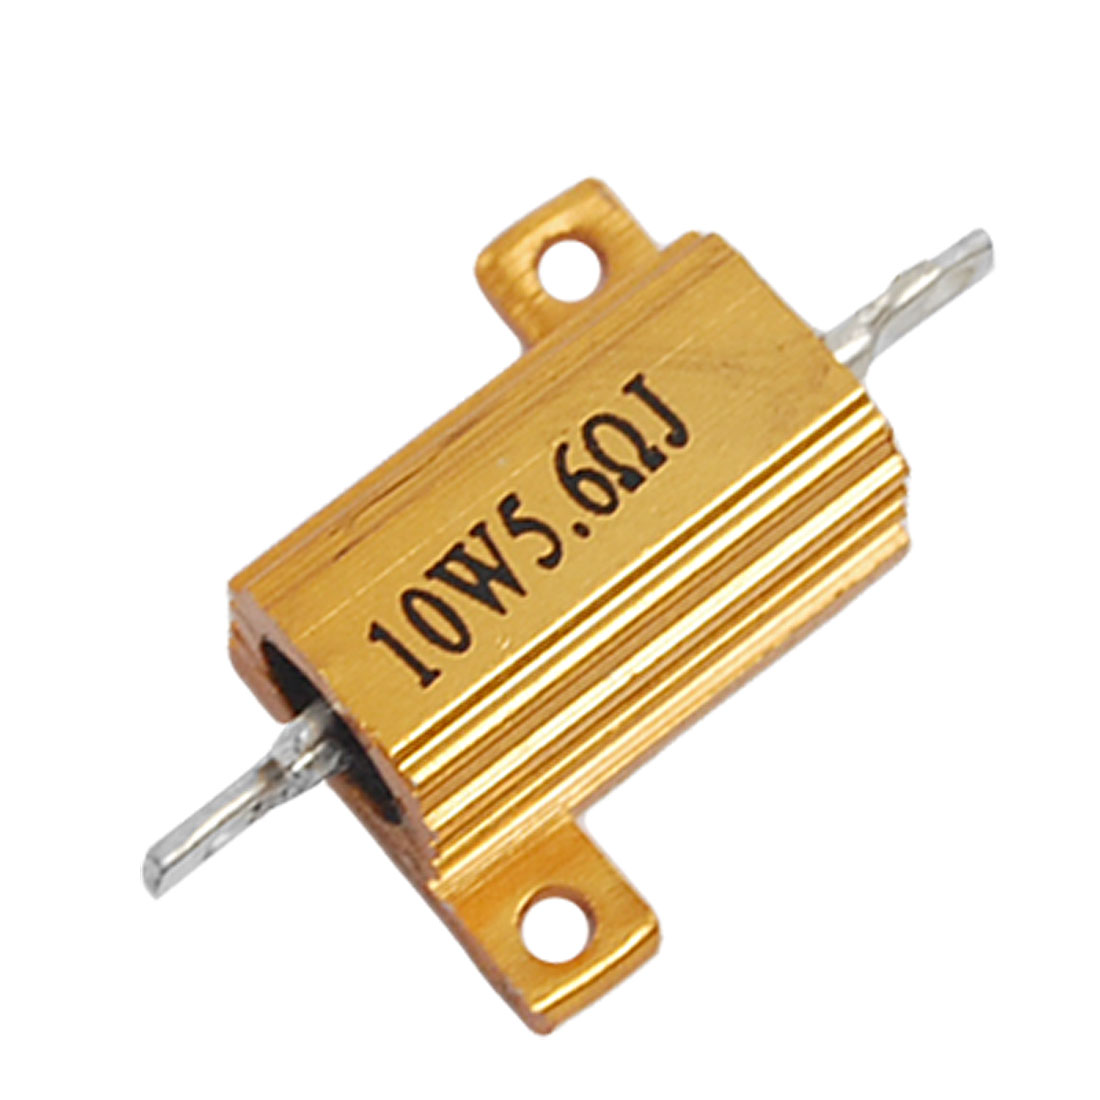 10W Power 5% 5.6 Ohm Resistance Value Aluminum Housed Resistor